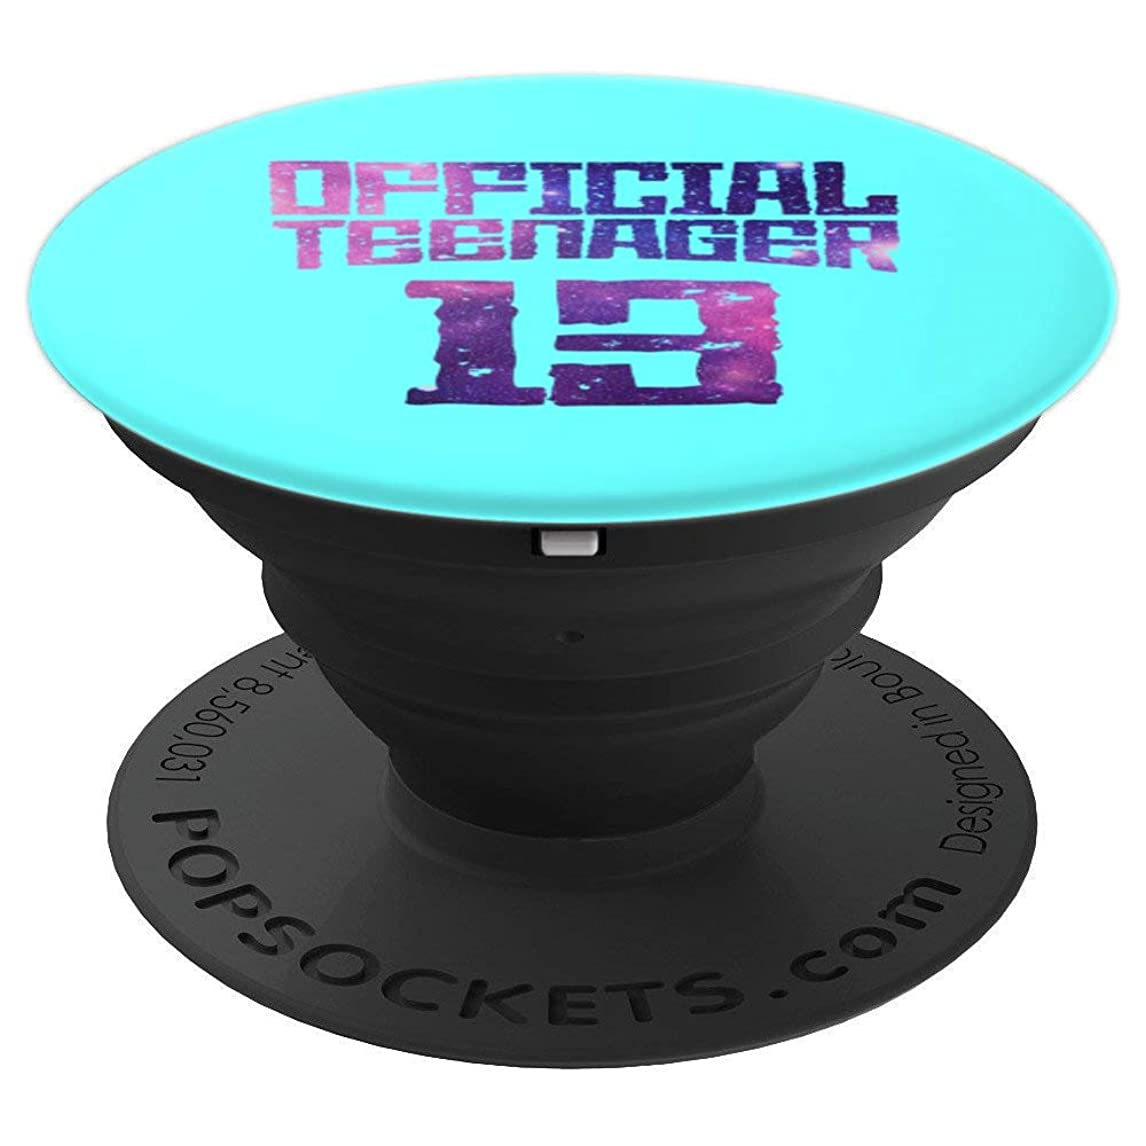 Official Teenager 13th Birthday Teen Men Women Perfect Gift - PopSockets Grip and Stand for Phones and Tablets gbov3854956898